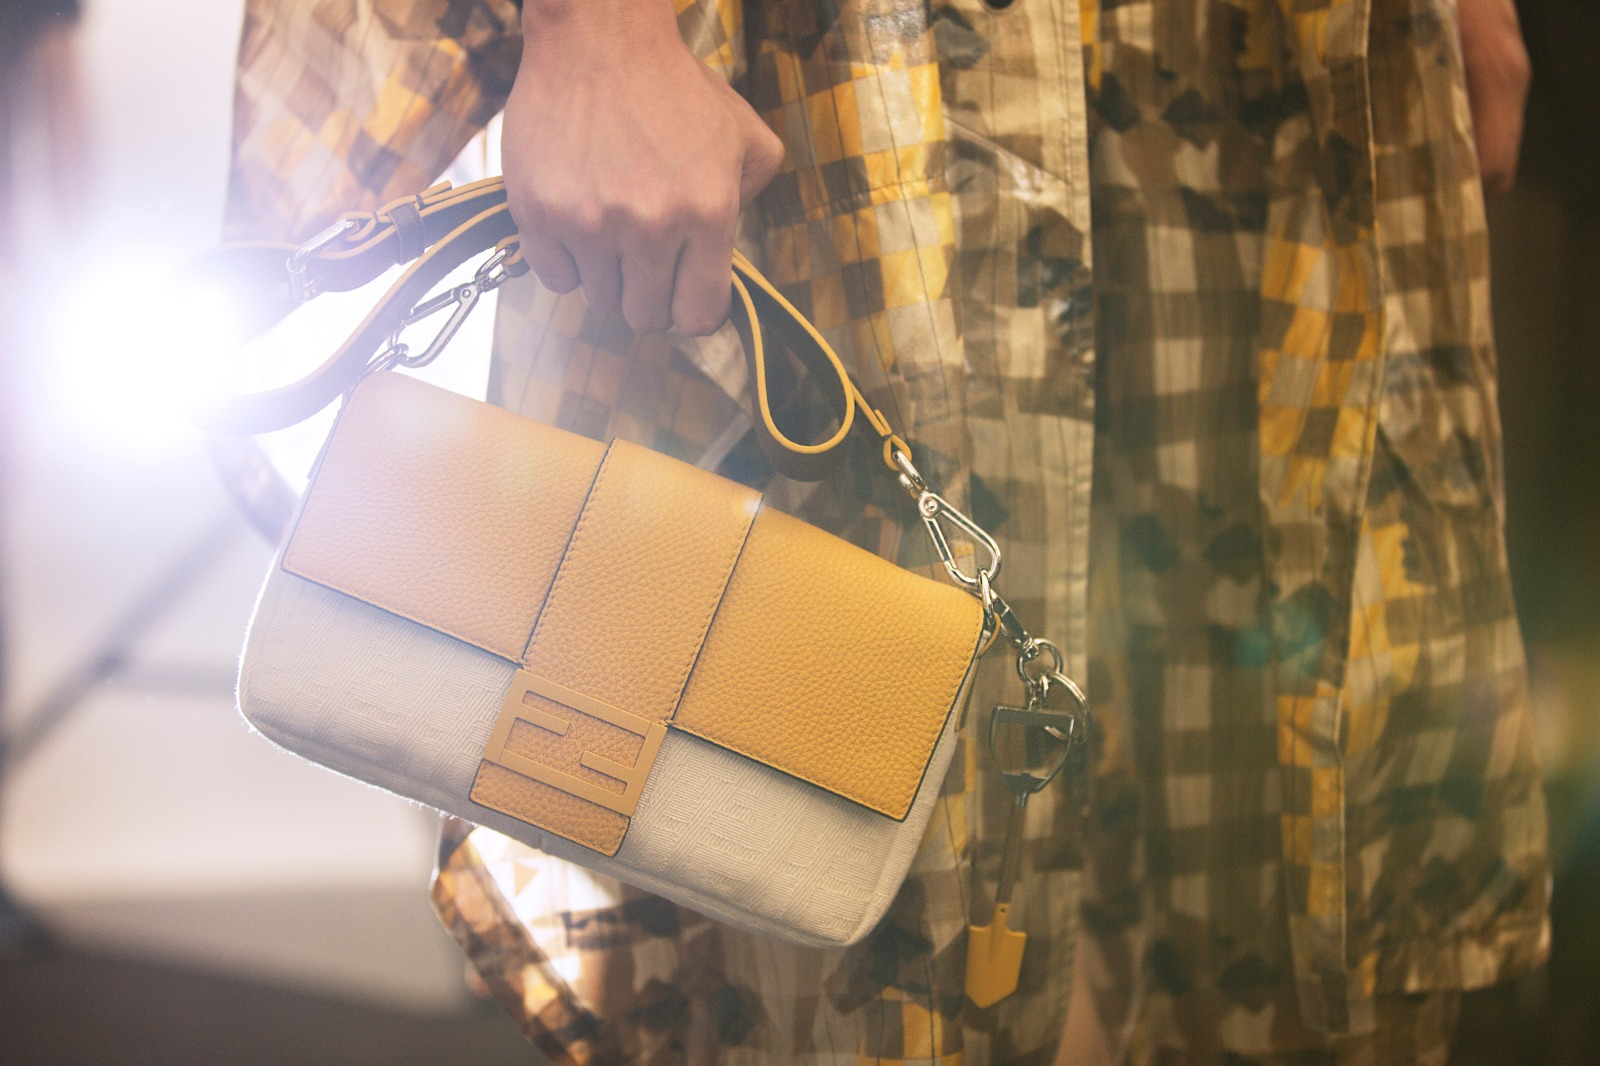 The Fendi Baguette for men is here; an iconic silhouette reimagined